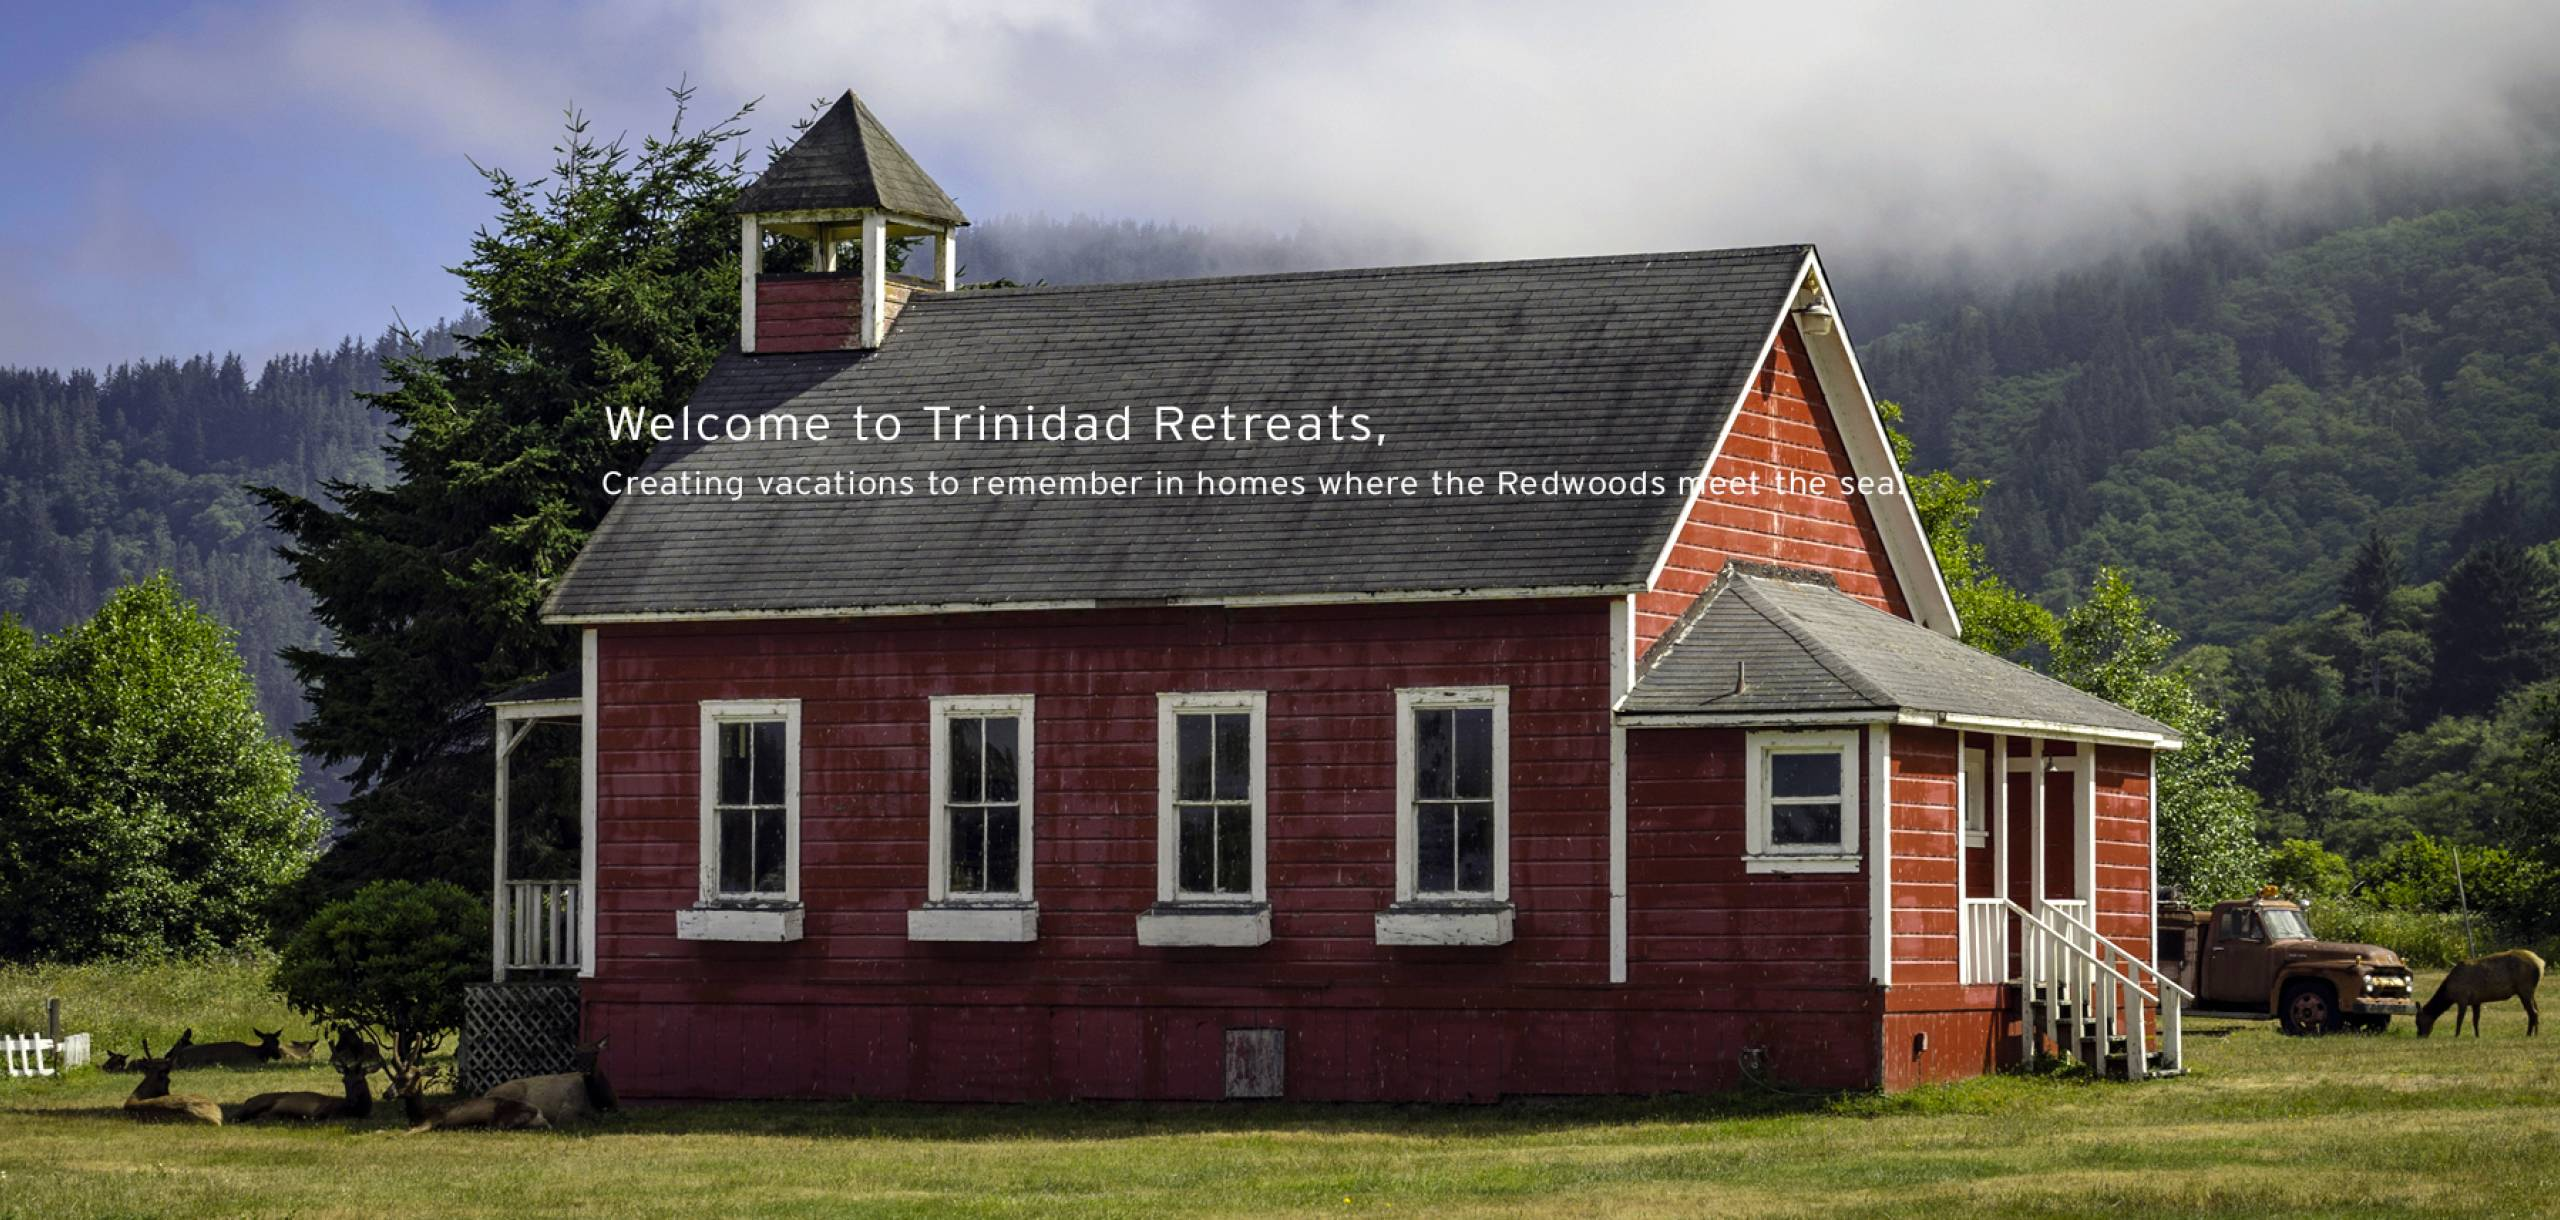 Fabulous Trinidad Retreats Vacation Rentals On The Redwood Coast Download Free Architecture Designs Sospemadebymaigaardcom